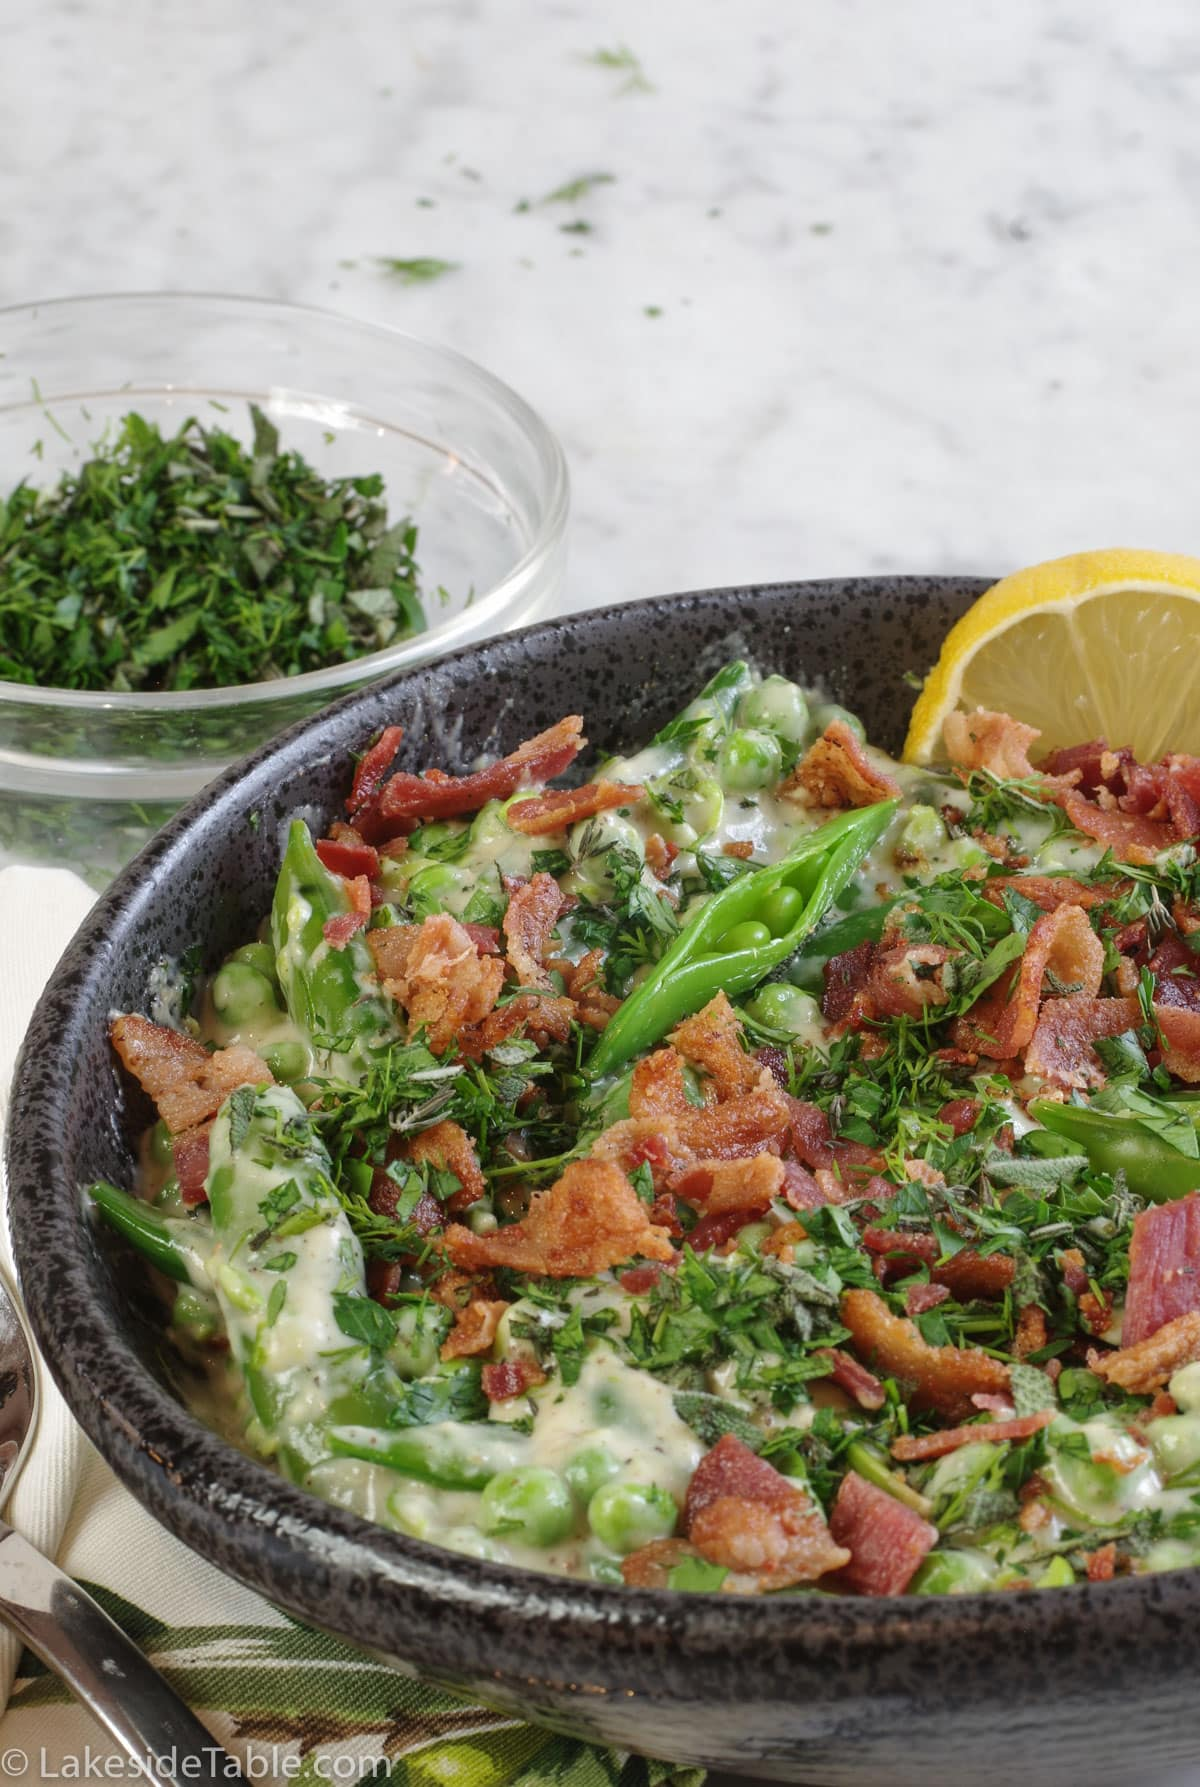 Sugar Snap Peas Recipe : A big black bowl filled to the brim with garden peas and sugar snap peas still in their pods topped with crispy bacon and chopped fresh herbs, garnished with a yellow lemon wedge